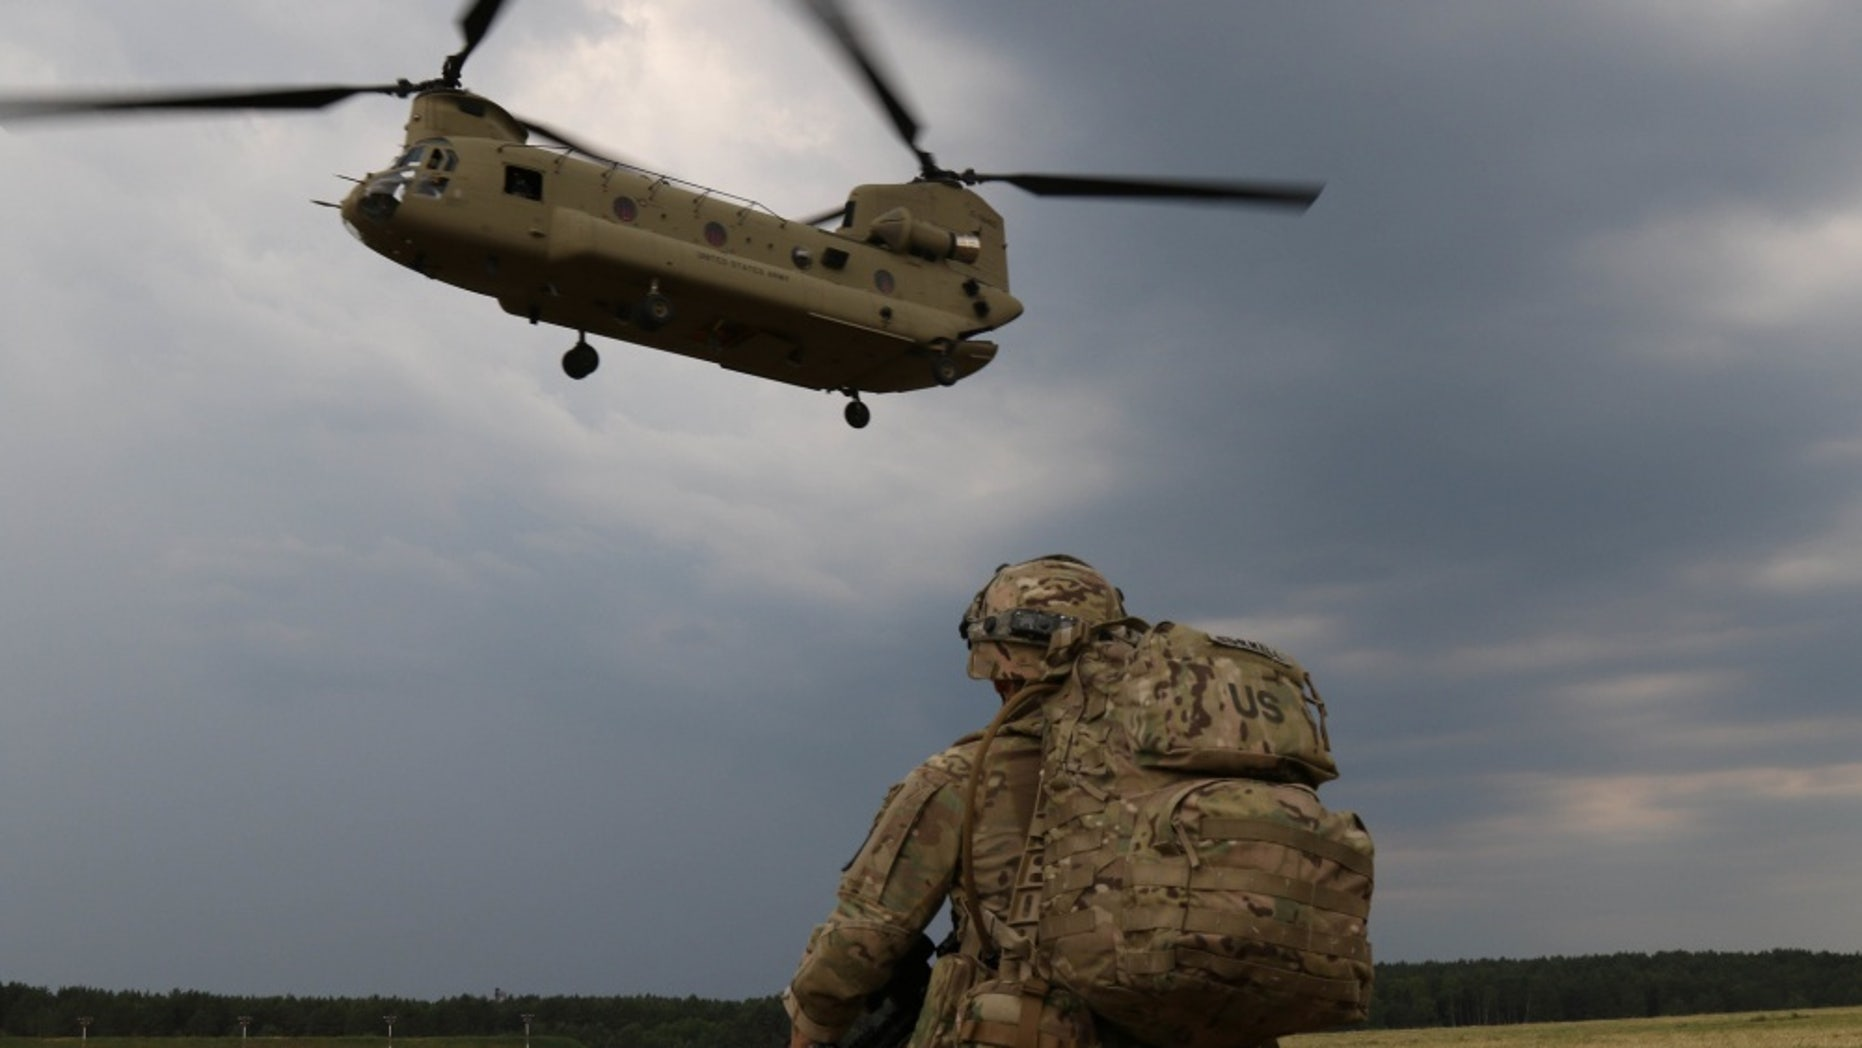 Capt. Gary Gorrel associated with 143 Airborne infantry Regiment from Texas, waits for his chinook to come, the implementation of an air insertion exercise. June, 10 in 2018, with members of the Israeli defense forces, the Italian armed forces and the Polish army for the exercise quick response. Exercise Rapid response 18 was a U.S. army Europe-led multinational exercise in Latvia, Lithuania and Poland - file-photo.